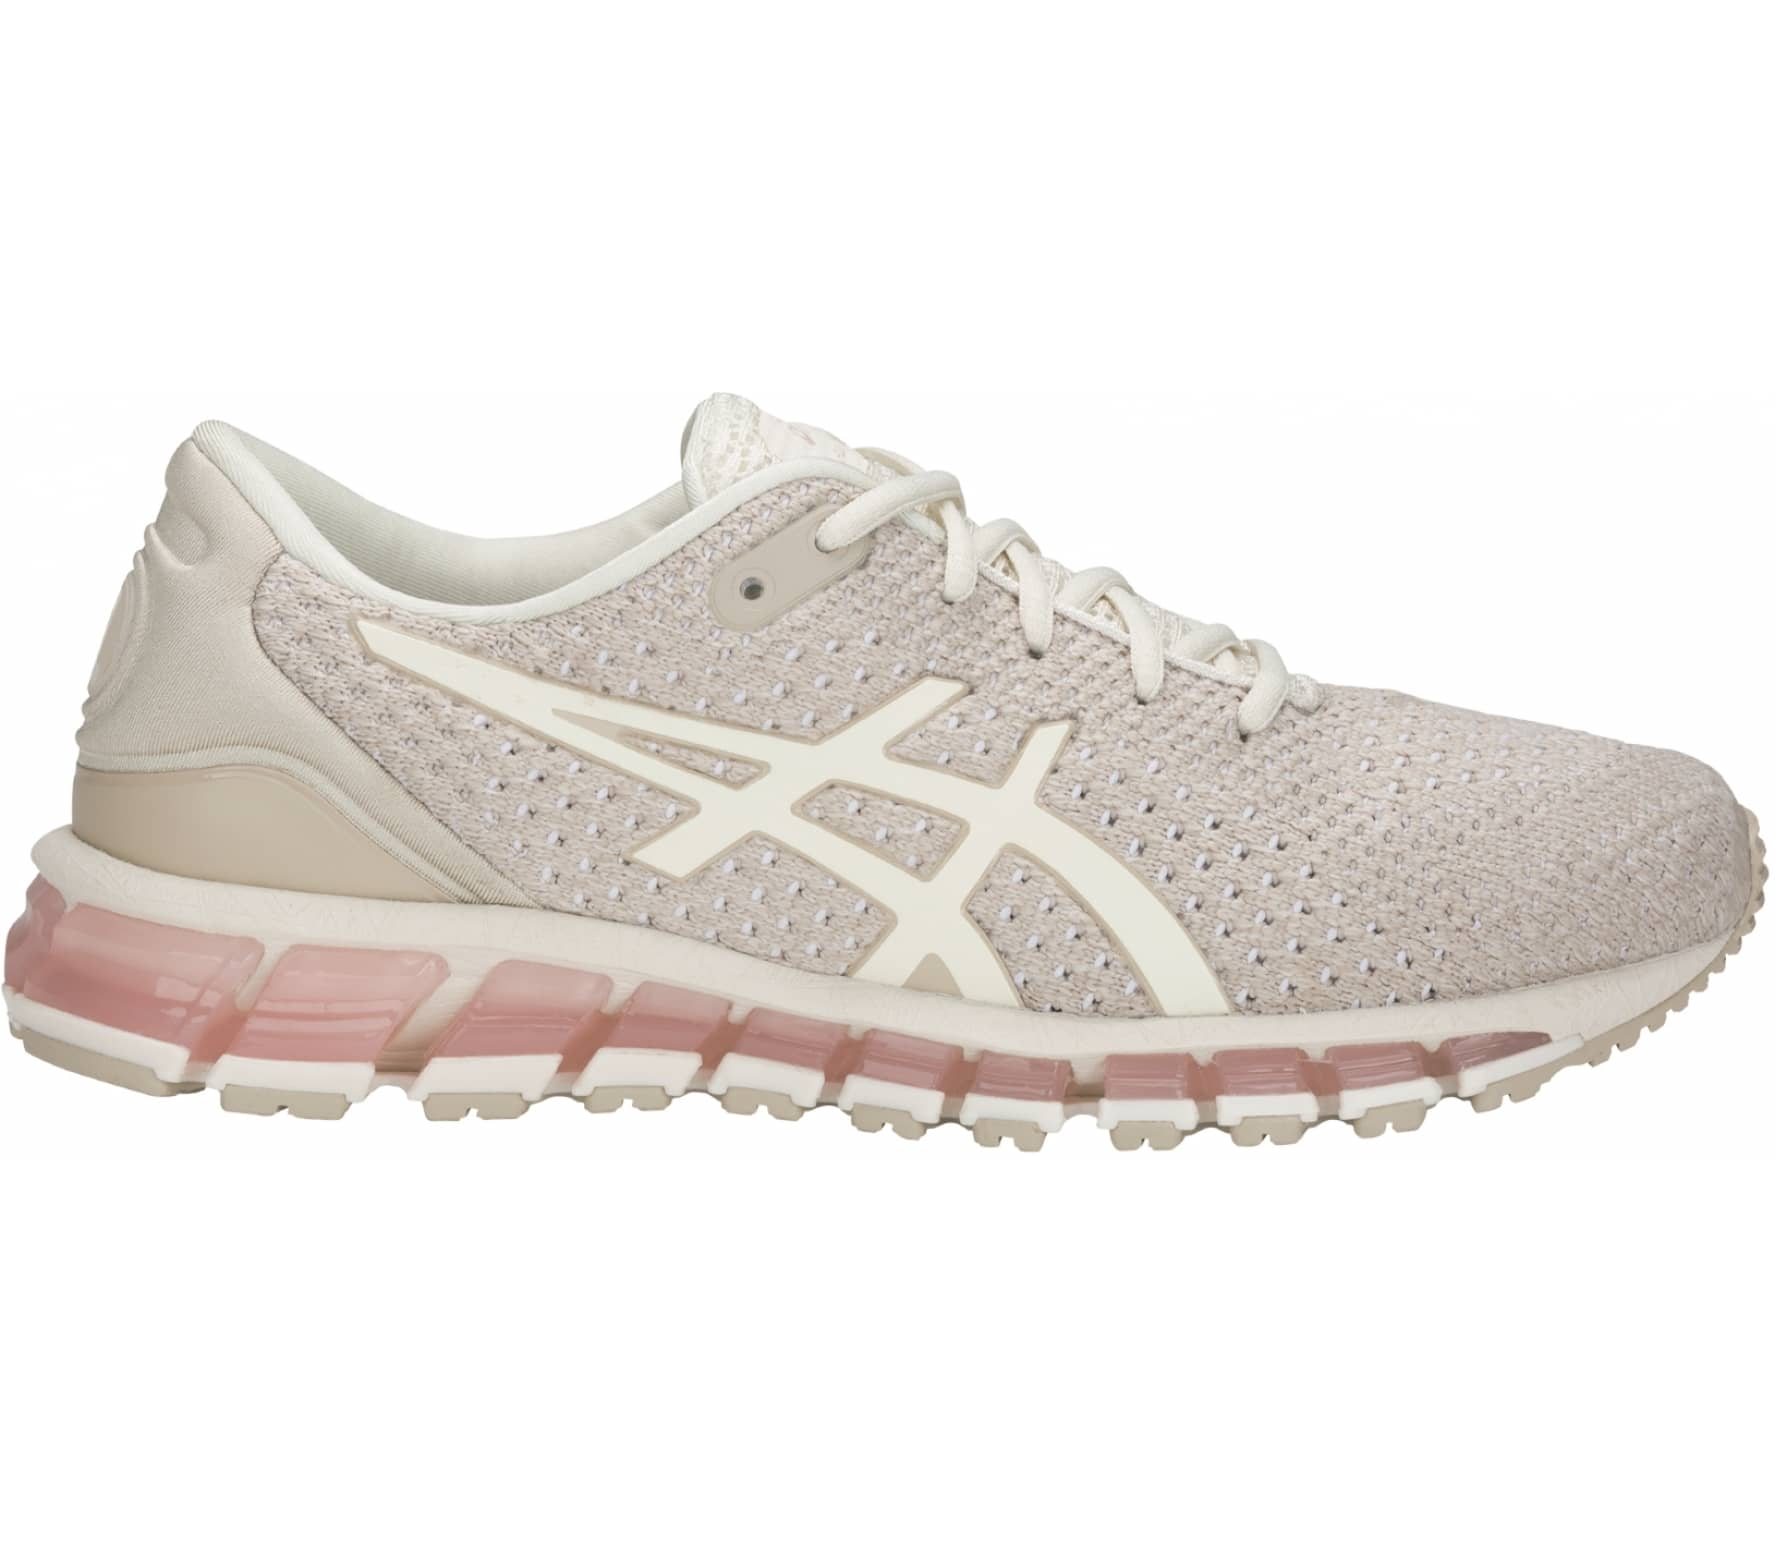 ASICS - Gel-Quantum 360 Knit 2 women s running shoes (beige) - buy ... fc5dd3ed58